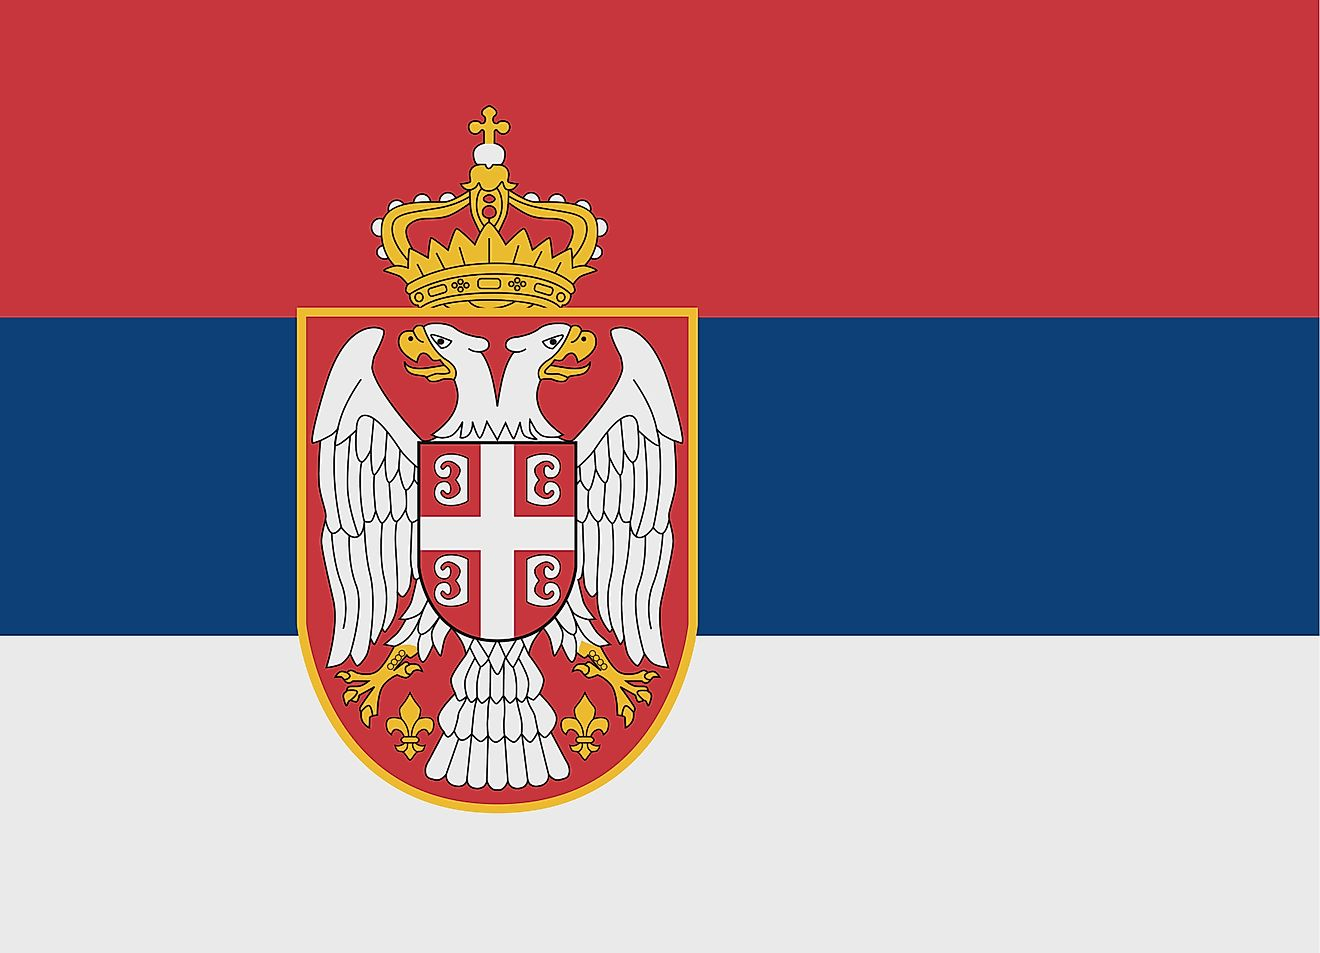 The National Anthem of Serbia features three equal horizontal stripes of the traditional Pan-Slavic colors - red (top), blue, and white; with the coat of arms placed towards the flag's hoist side